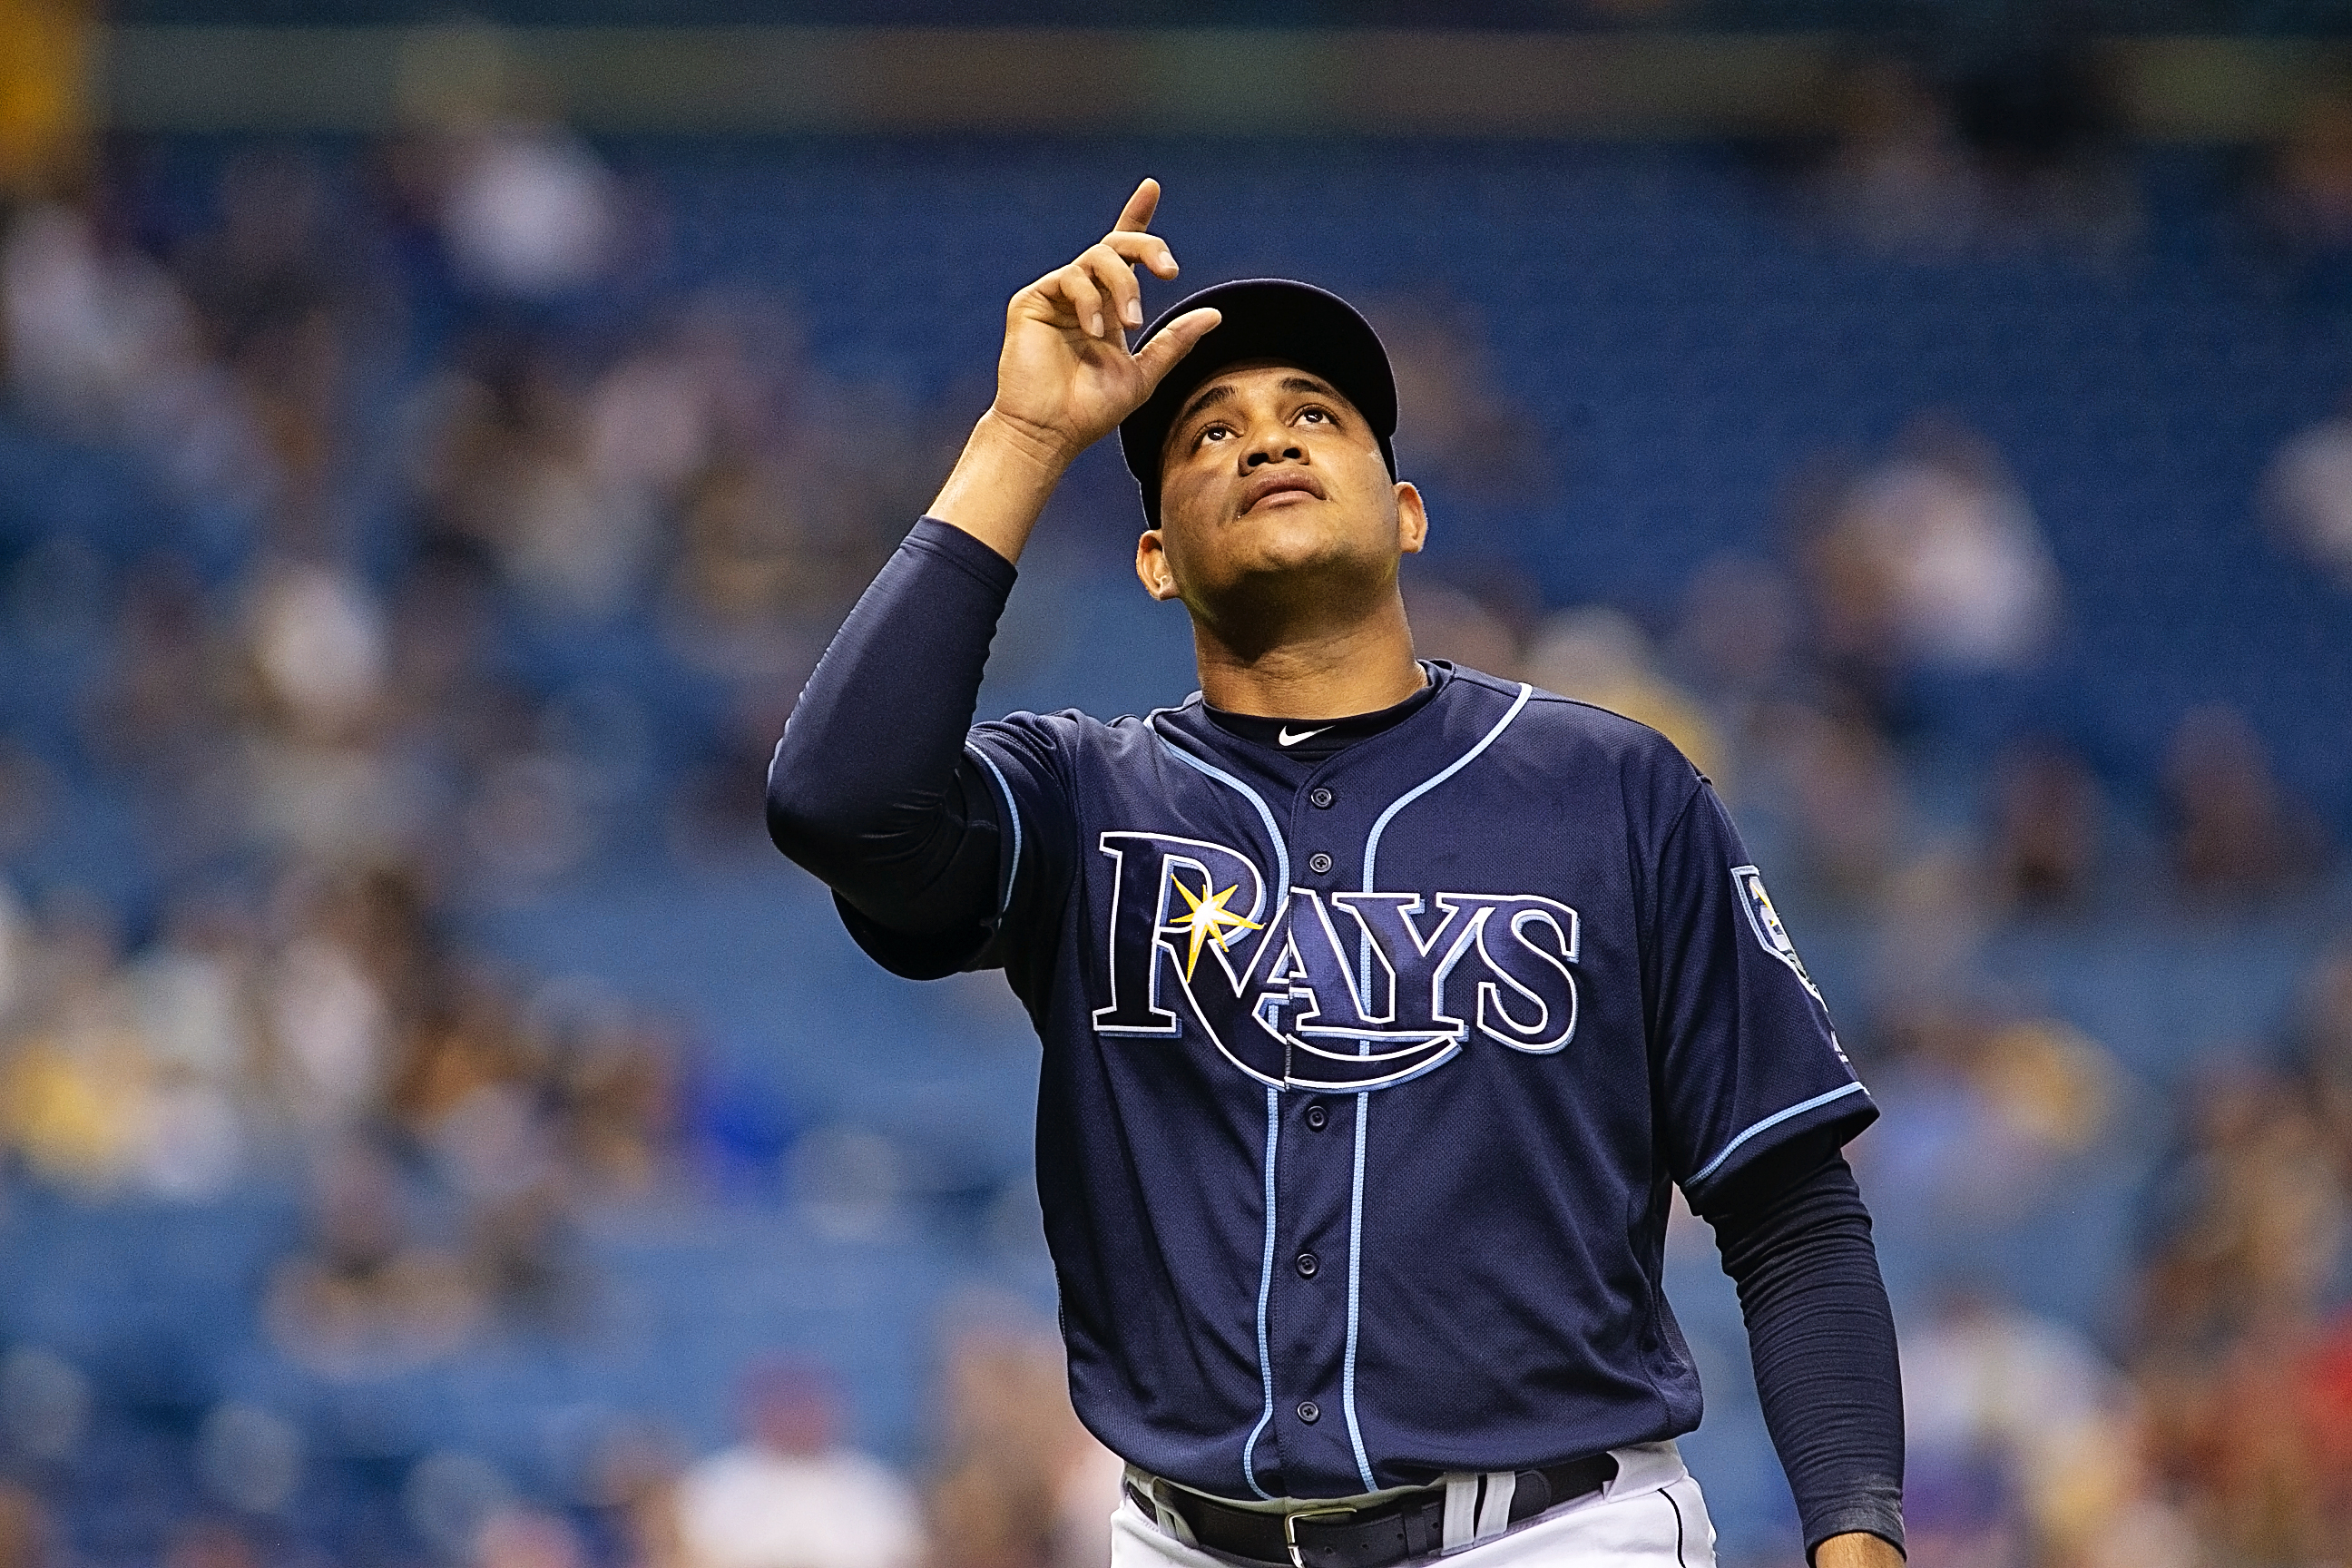 ChIrinos had his toughest outing for Rays./CARMEN MANDATO